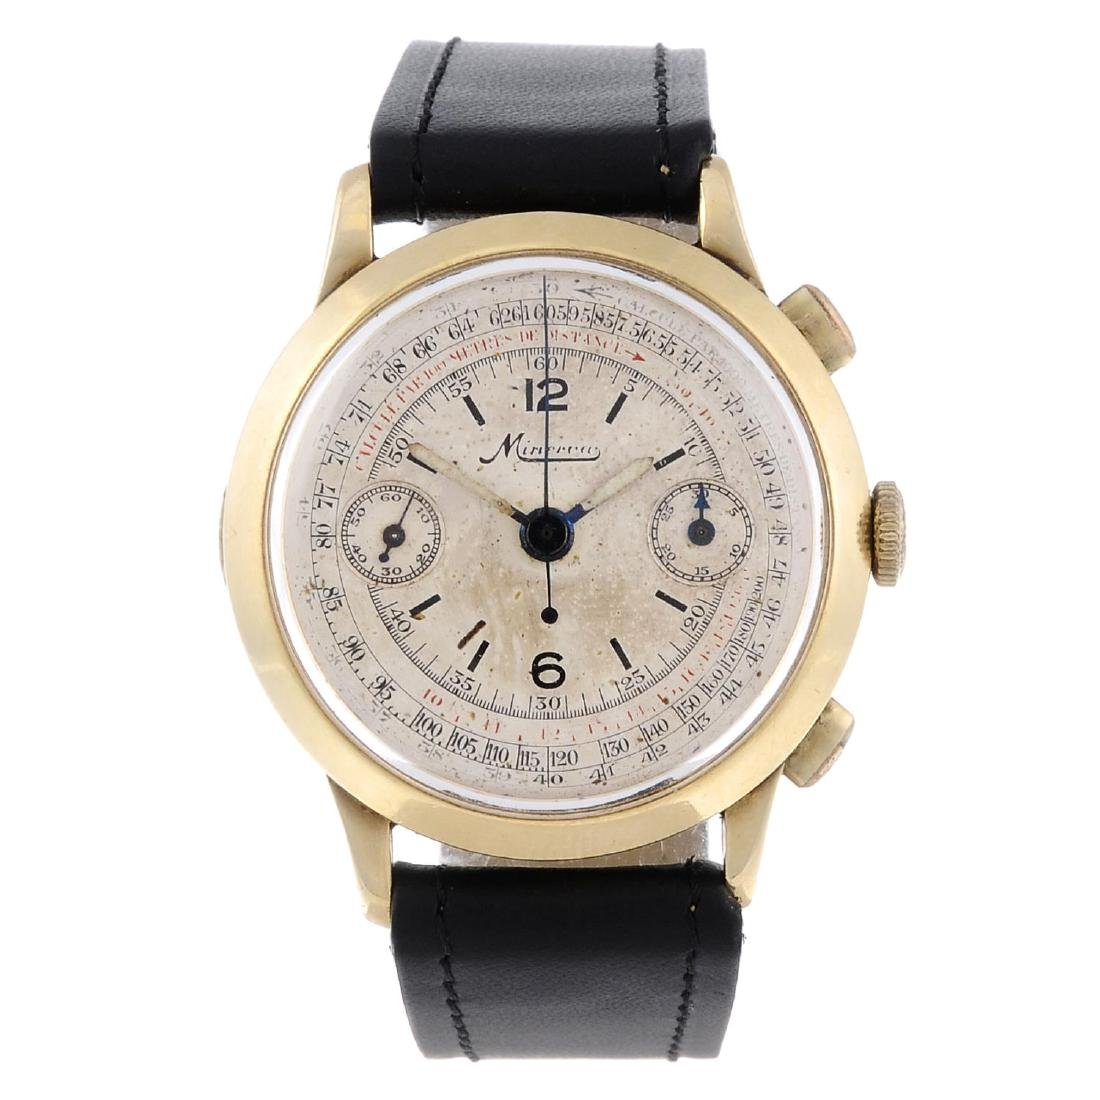 MINERVA - a gentleman's chronograph wrist watch. Yellow